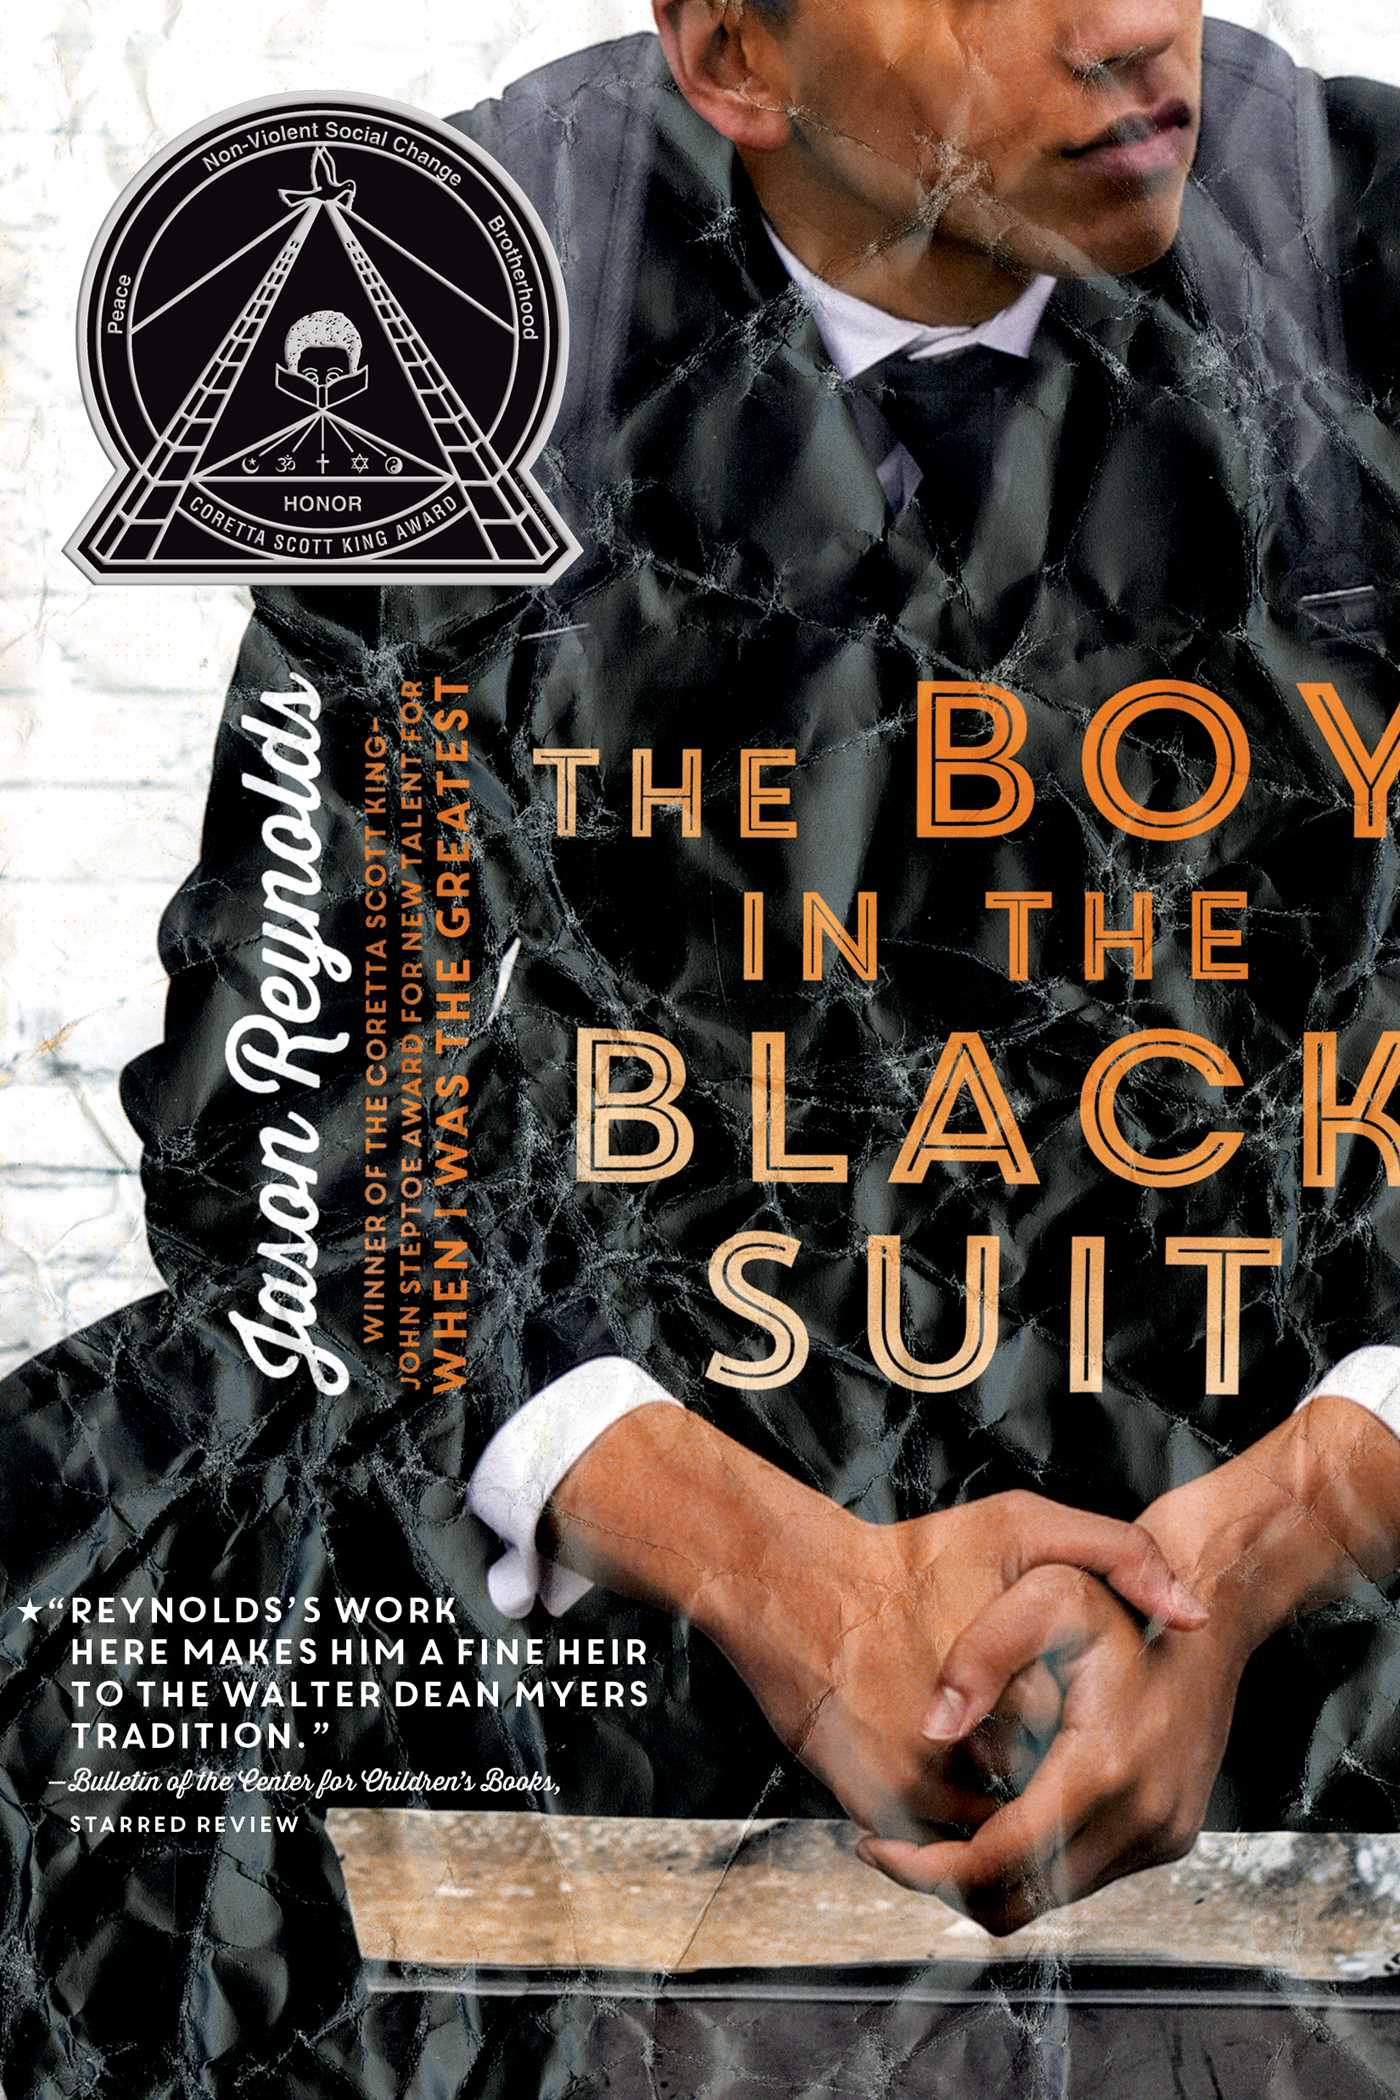 The Boy in the Black Suit [electronic resource]